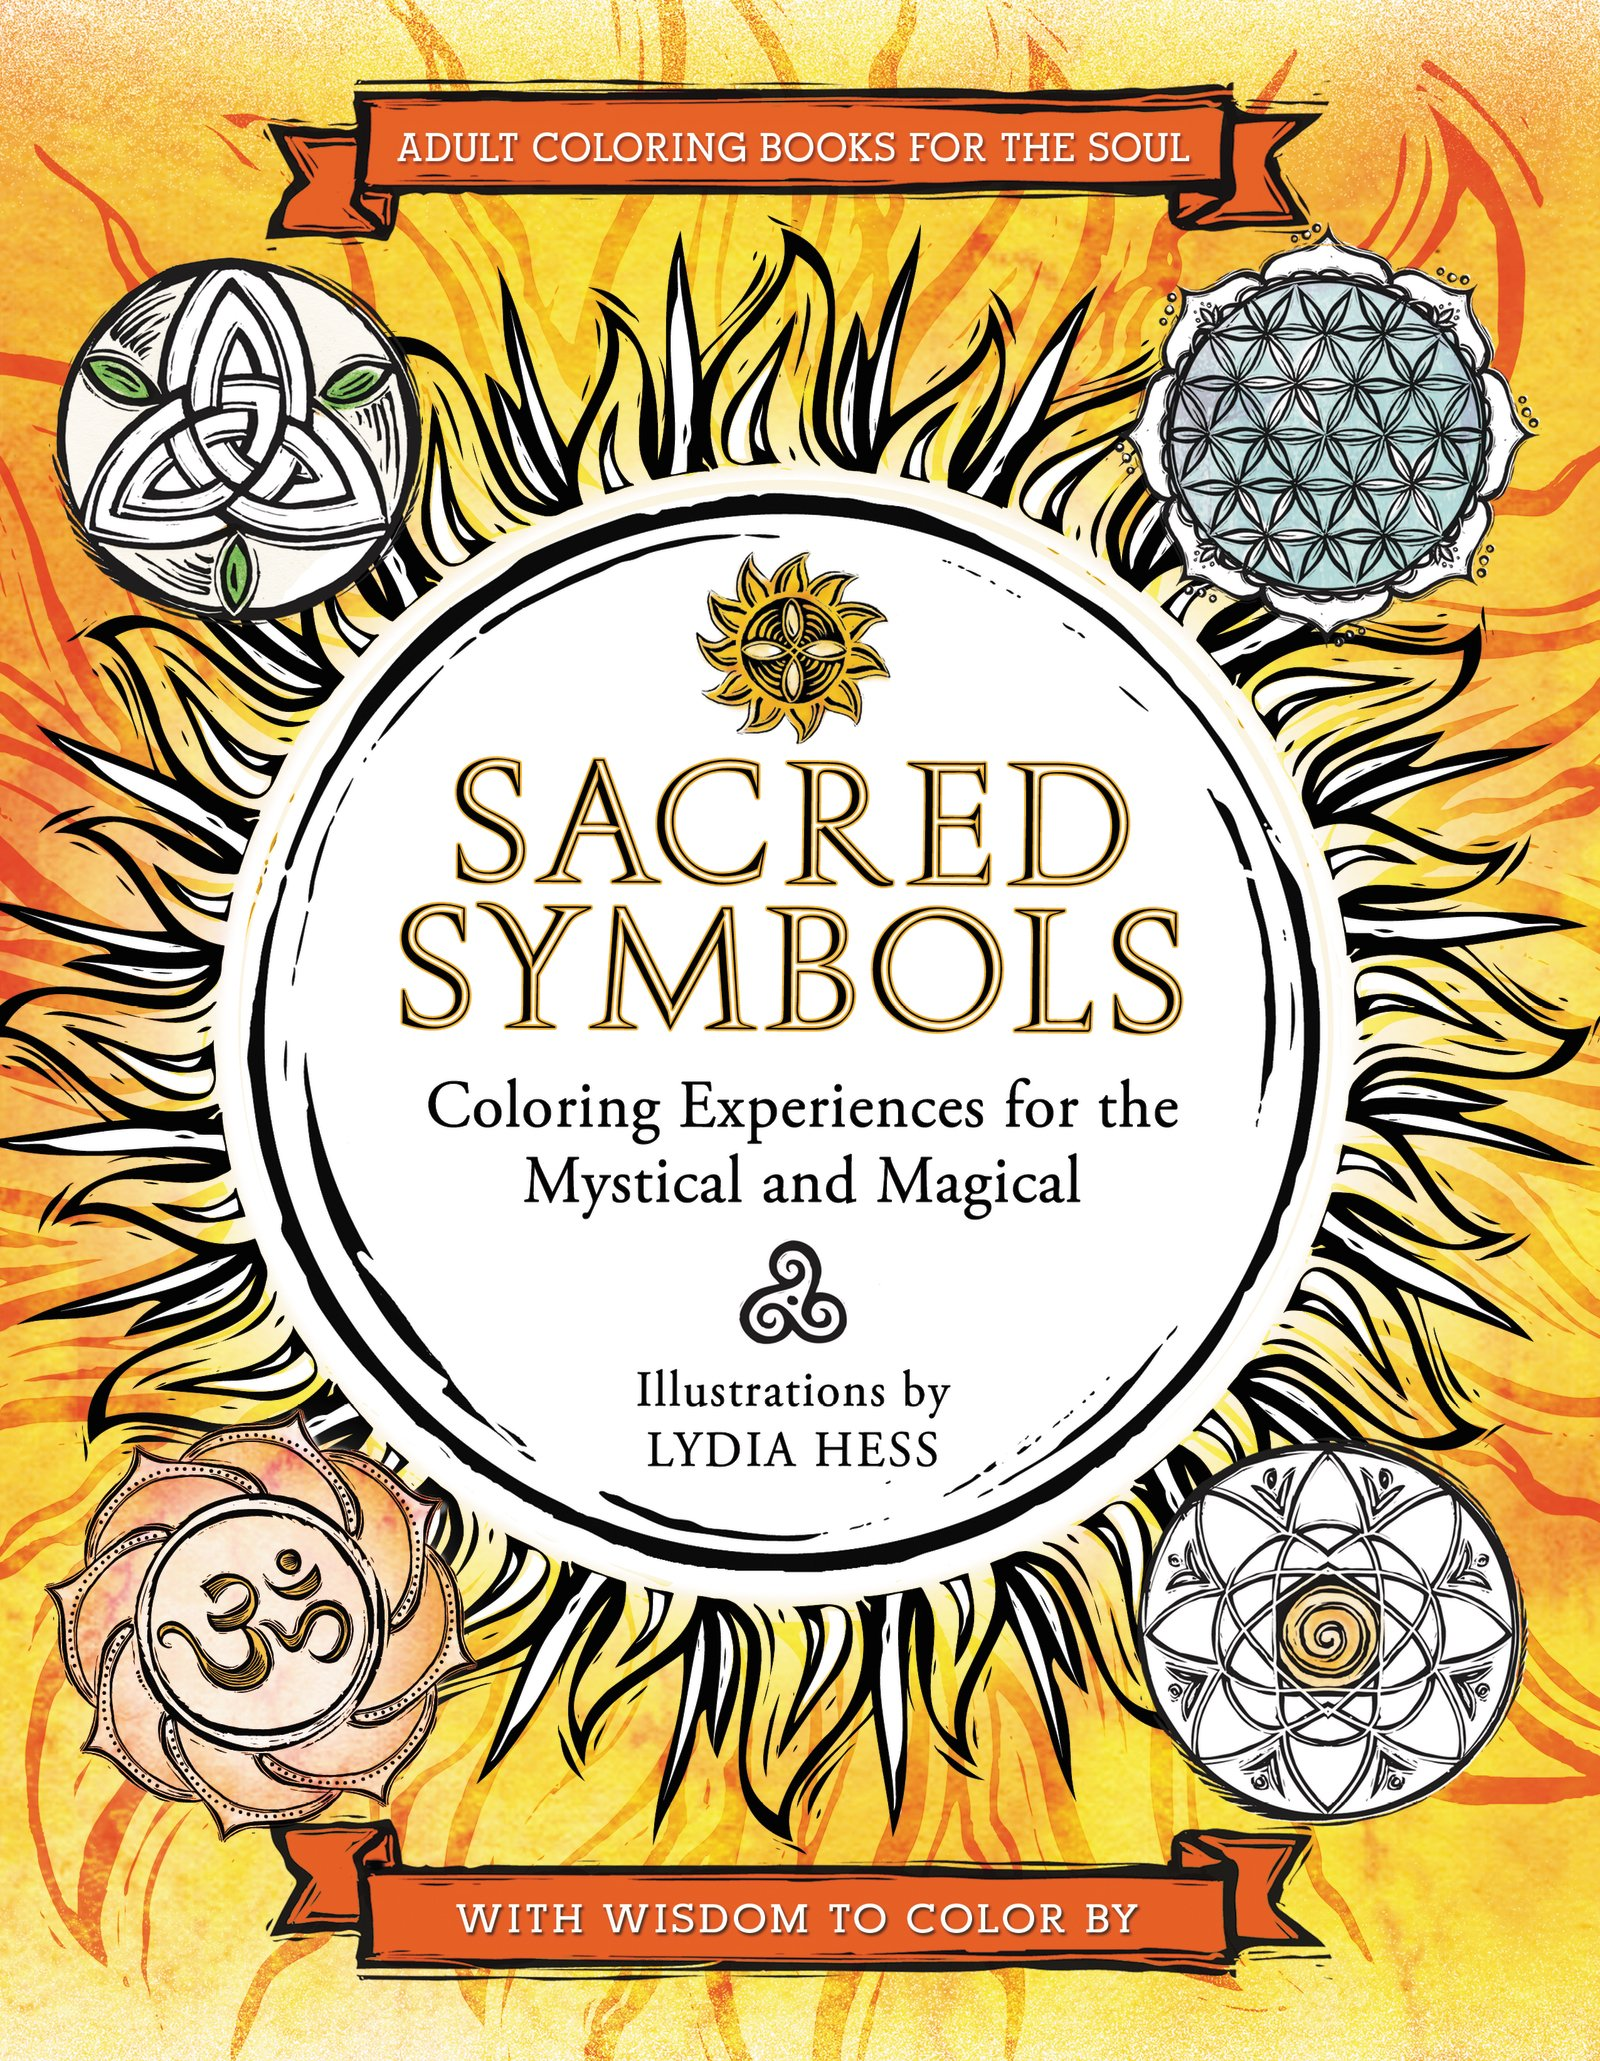 Coloring book kea - Sacred Symbols Coloring Experiences For The Mystical And Magical Coloring Books For The Soul Amazon Co Uk Lydia Hess 9780062434258 Books